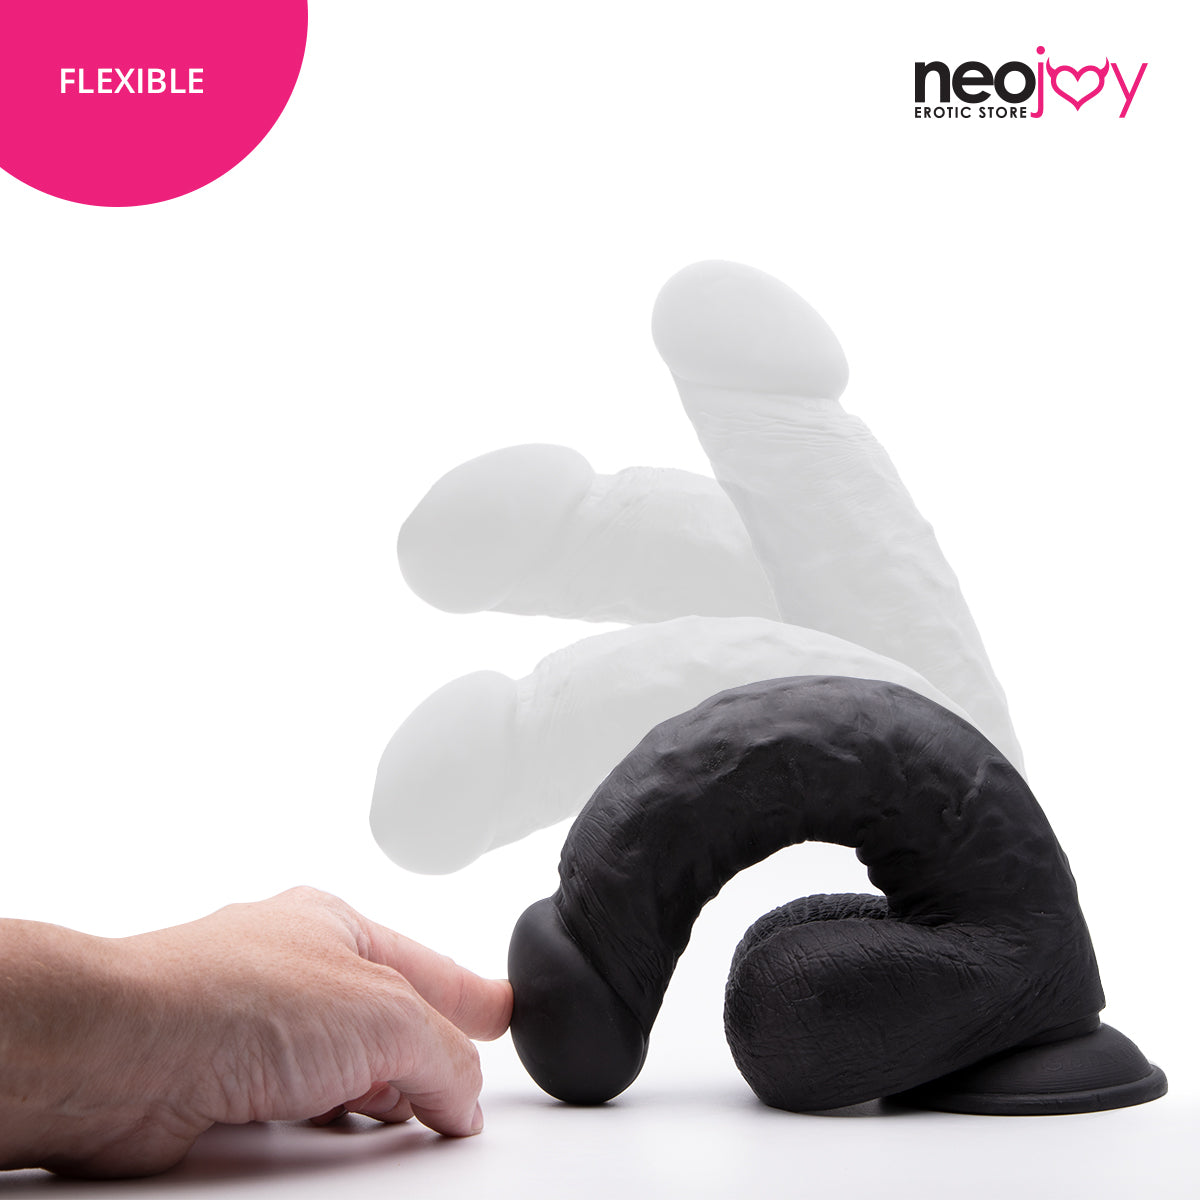 Neojoy - Girthy Lover Dildo With Strap-On Dong - Black - 25cm - 9.8 inch